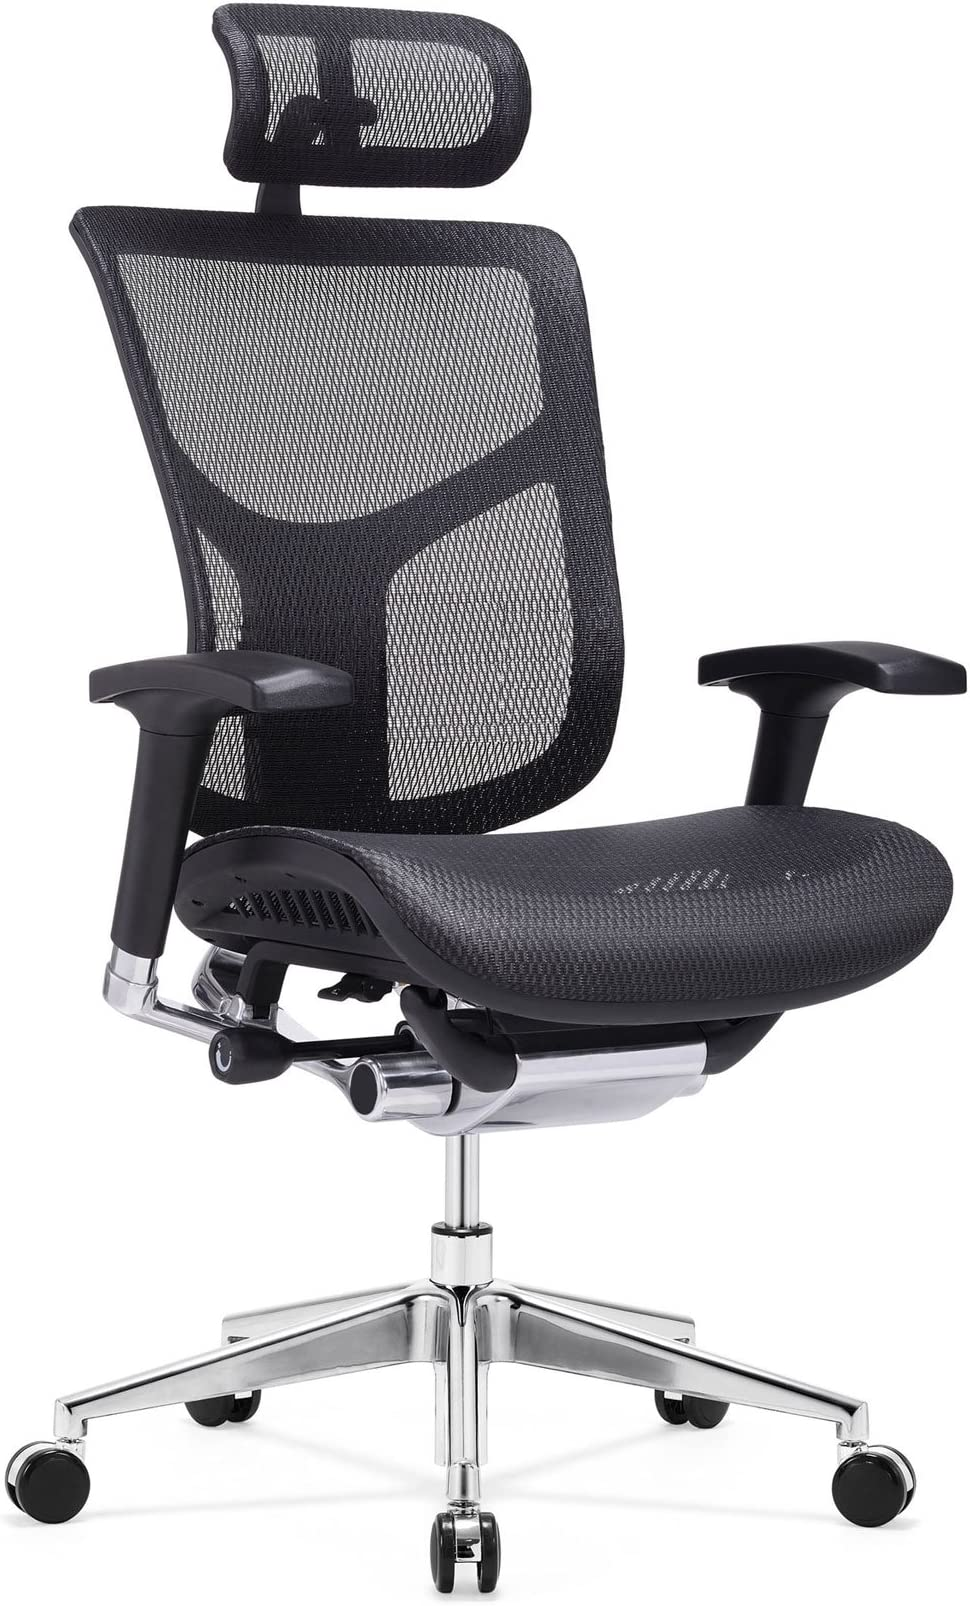 GM Seating Dreem XL Ergonomic Mesh Executive Hi Back, Swivel Chair, Chrome Base with Headrest, Black, Seat Slide, Passive Lumbar Support